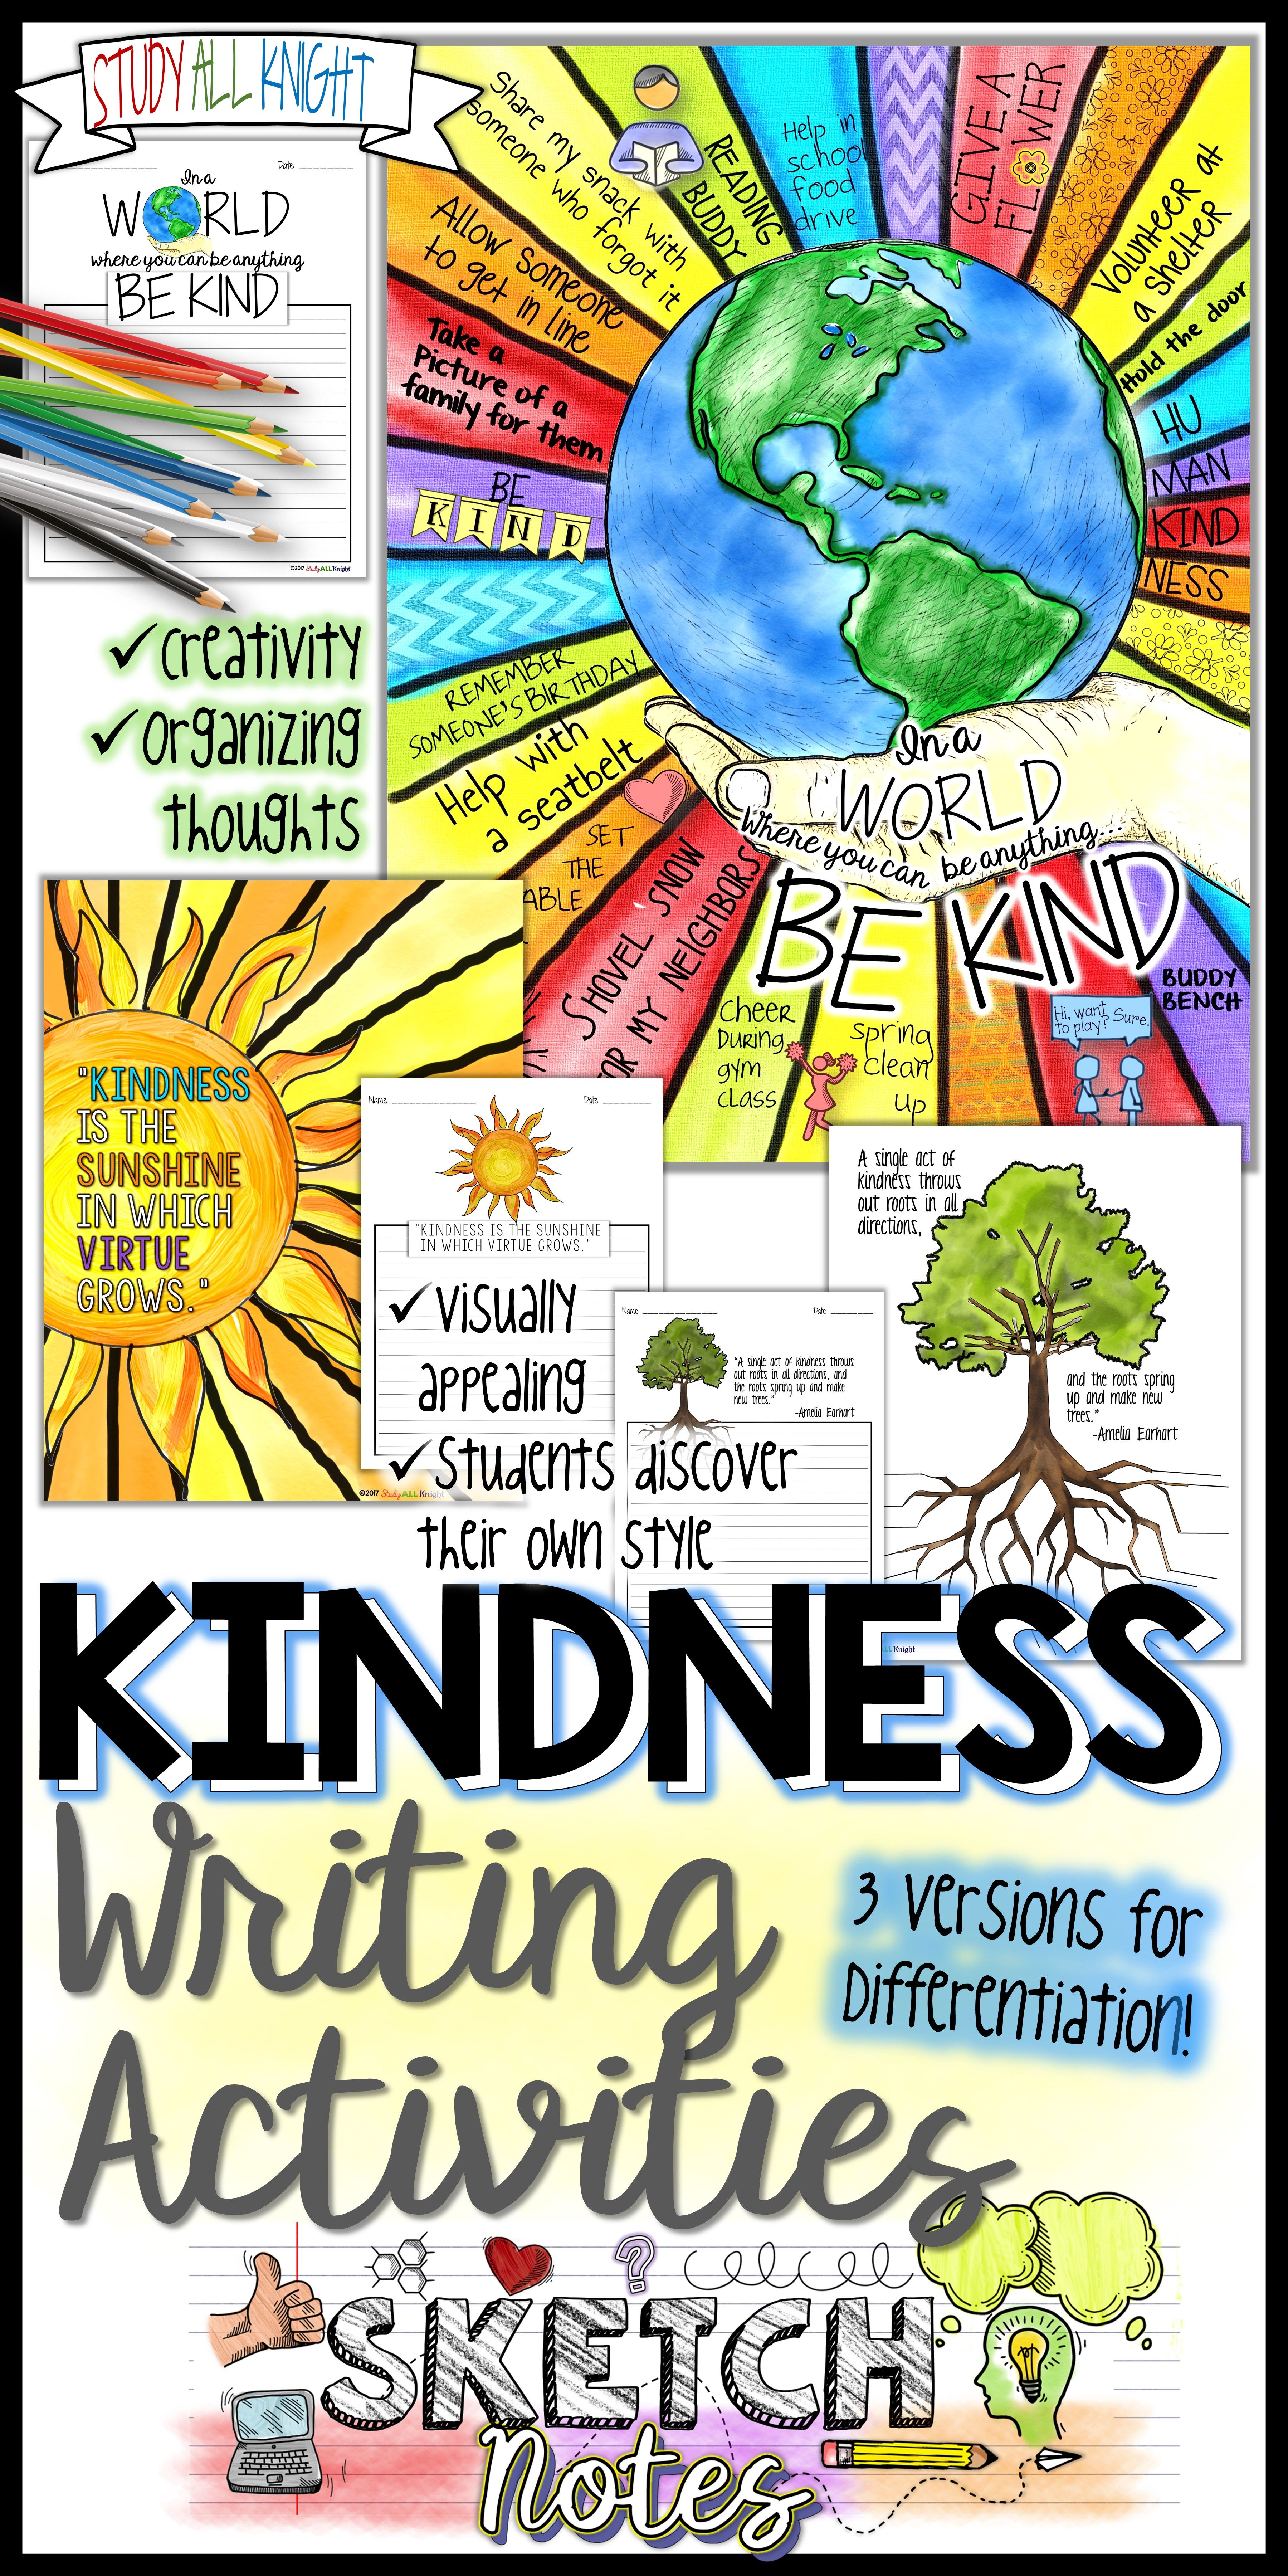 Kindness Writing Activity Sketch Notes Quotes Choices